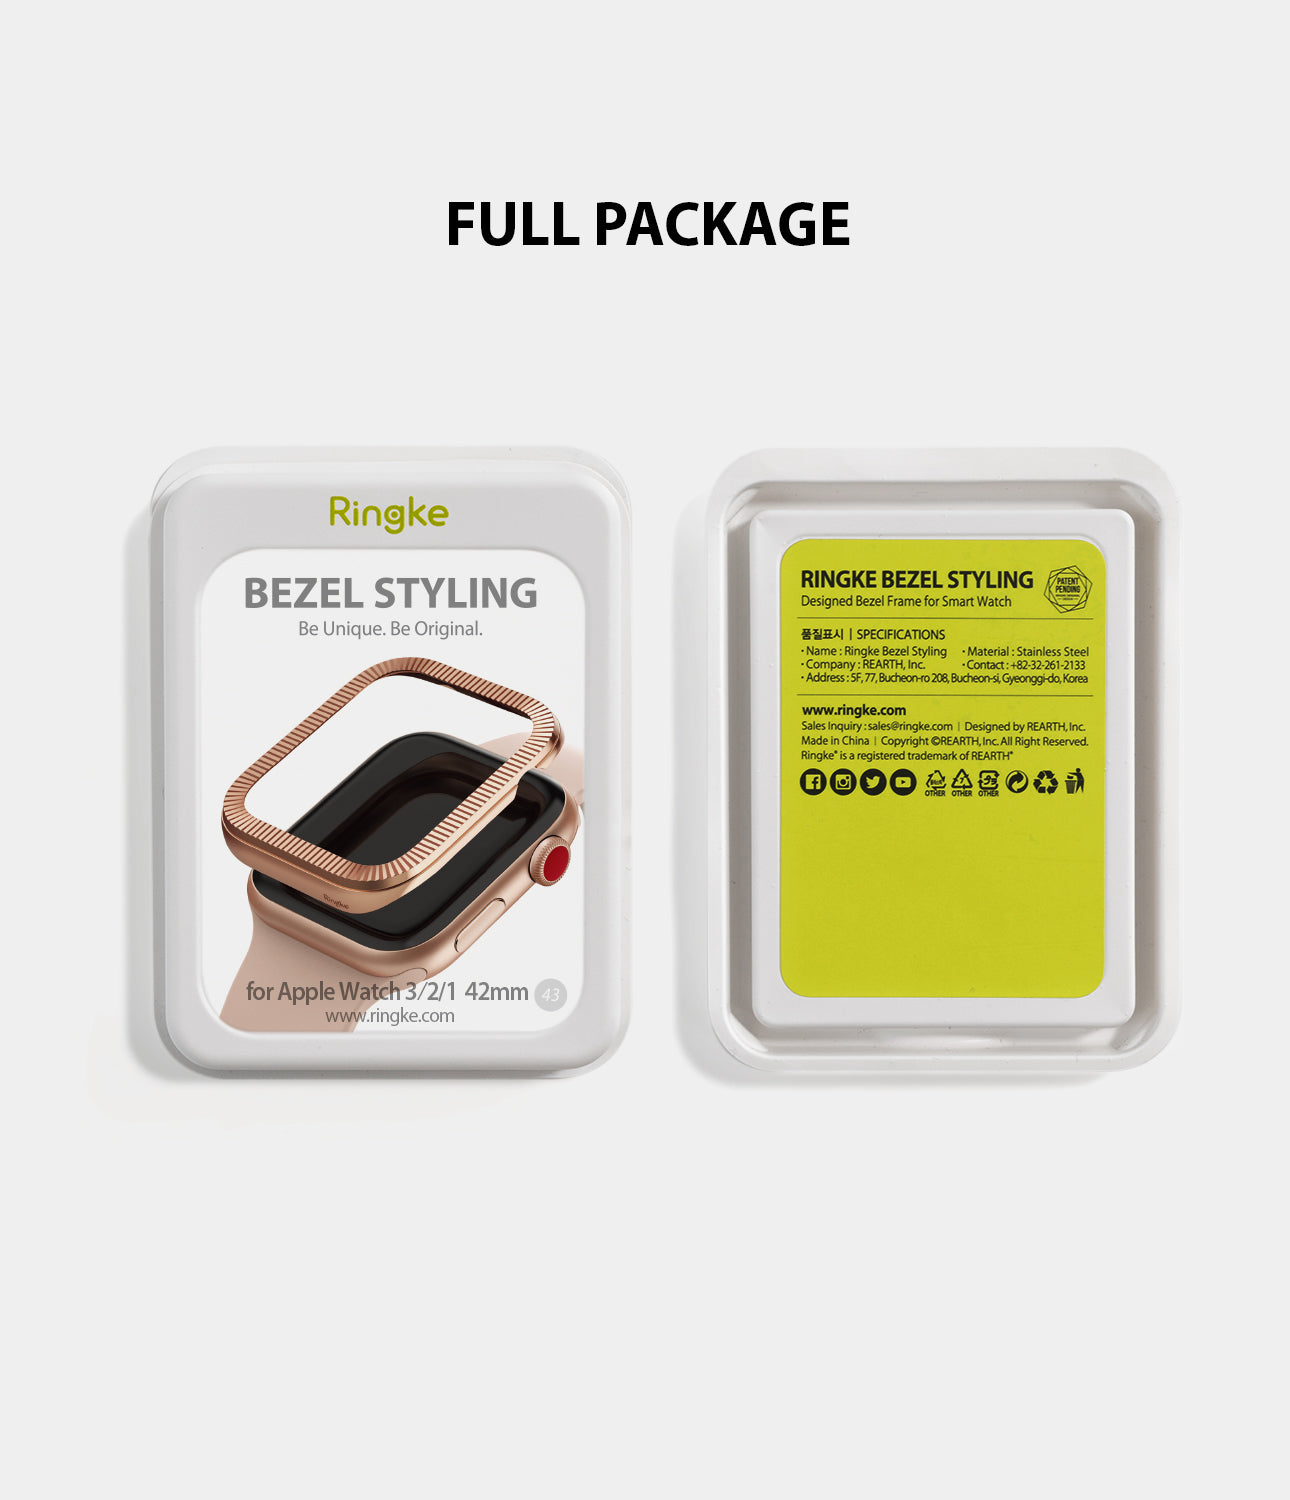 apple watch 3 2 1 42mm case ringke bezel styling stainless steel frame cover 42-43 simple installation